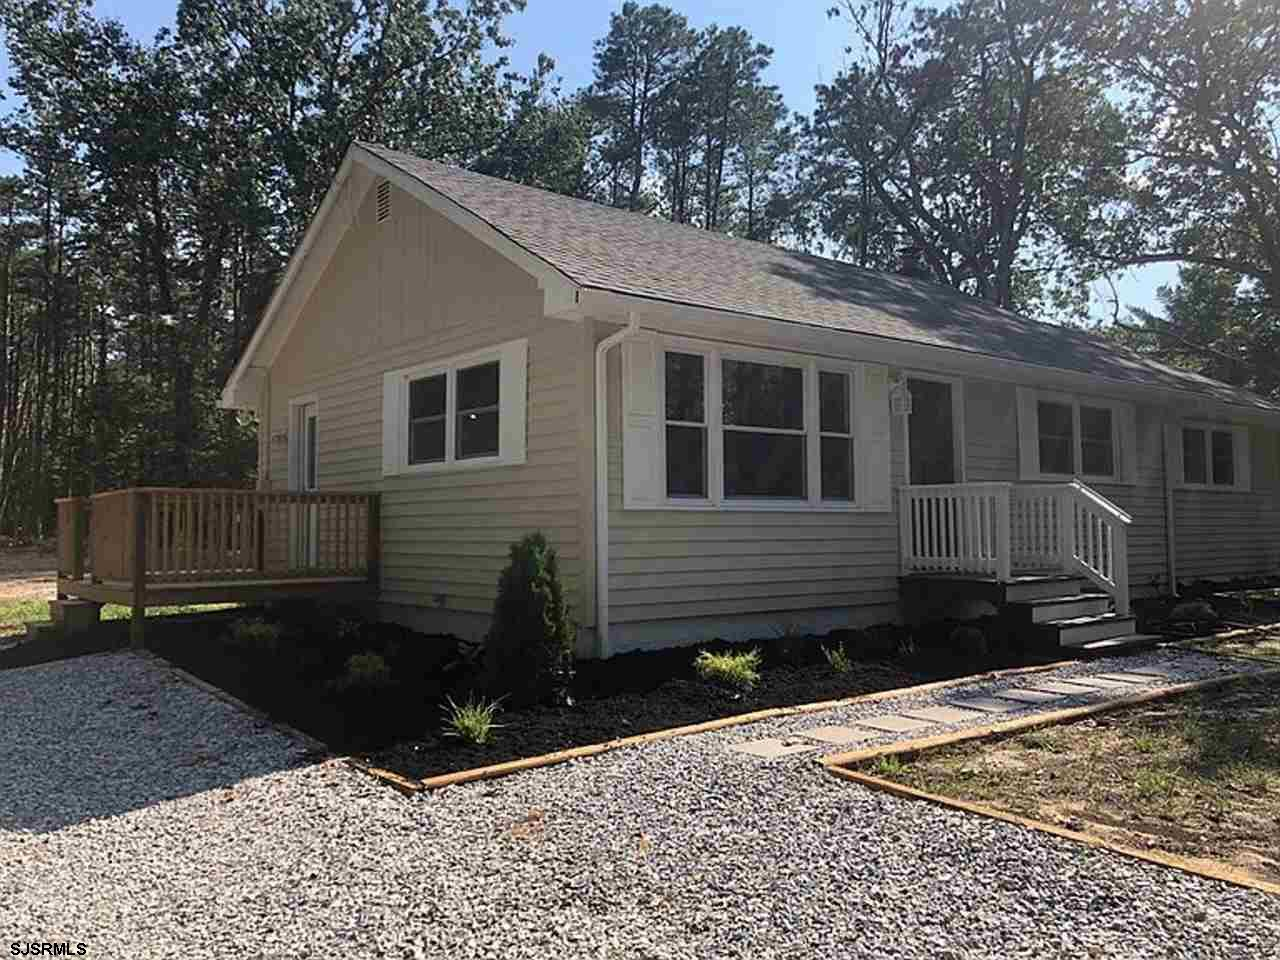 Adorable updated contemporary 3 bedroom 2 Full bath, Ranch style home, private location on 3.63 acre